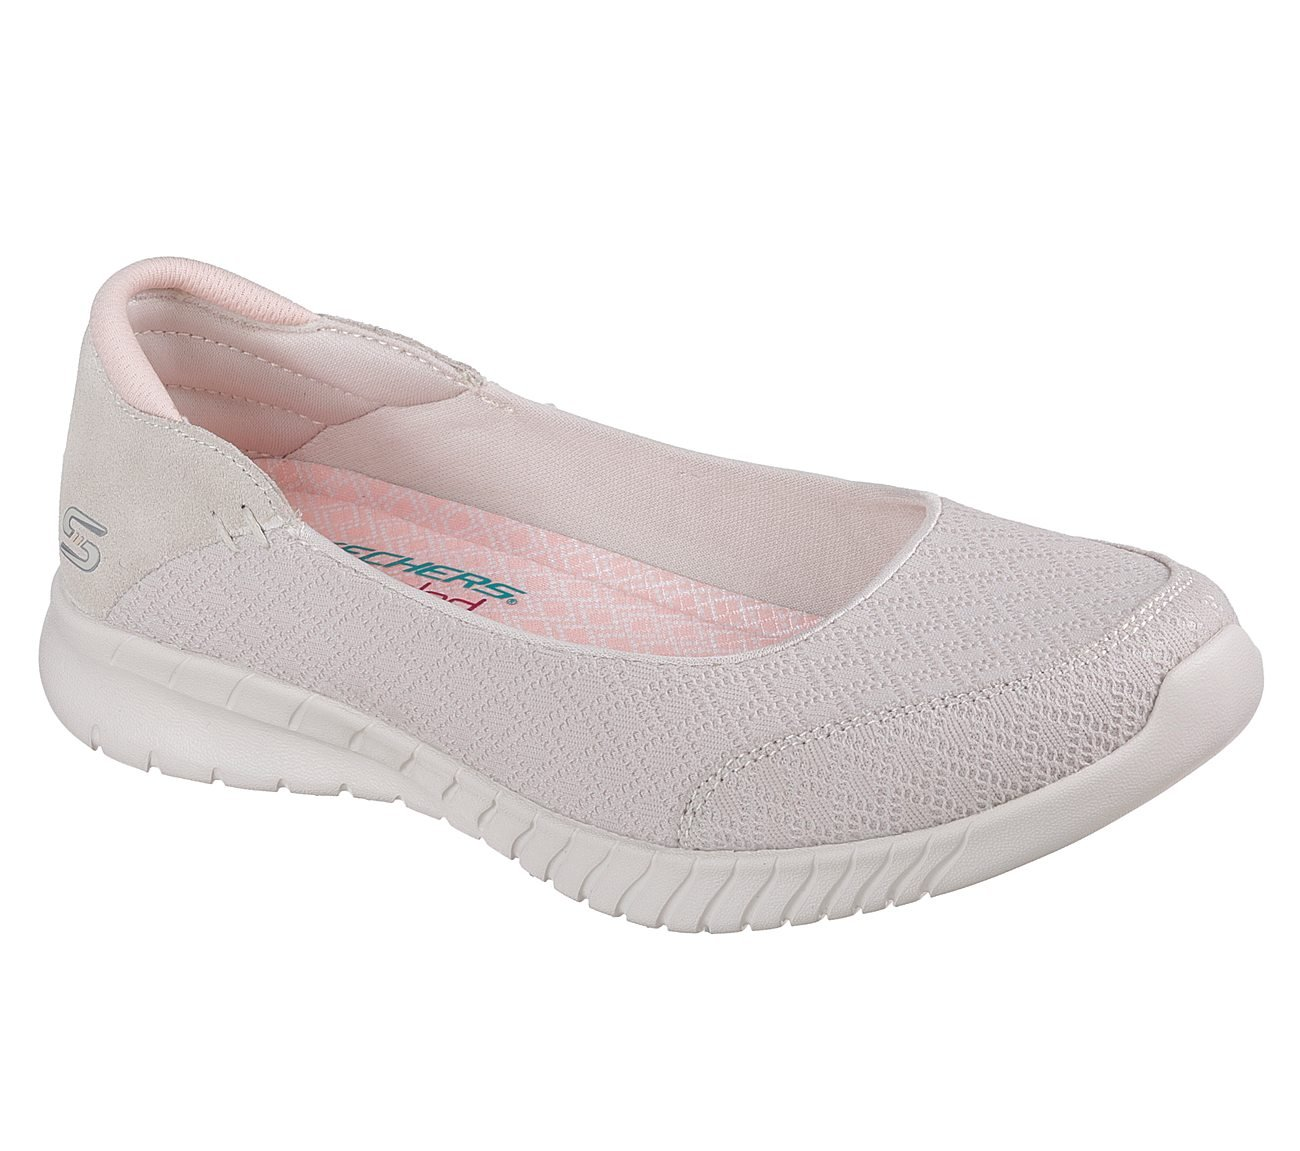 Skechers Wave Lite Don't Mention It Womens Slip On Skimmer Sneakers B07DFLWTJX 6.5 B(M) US|Natural/Coral